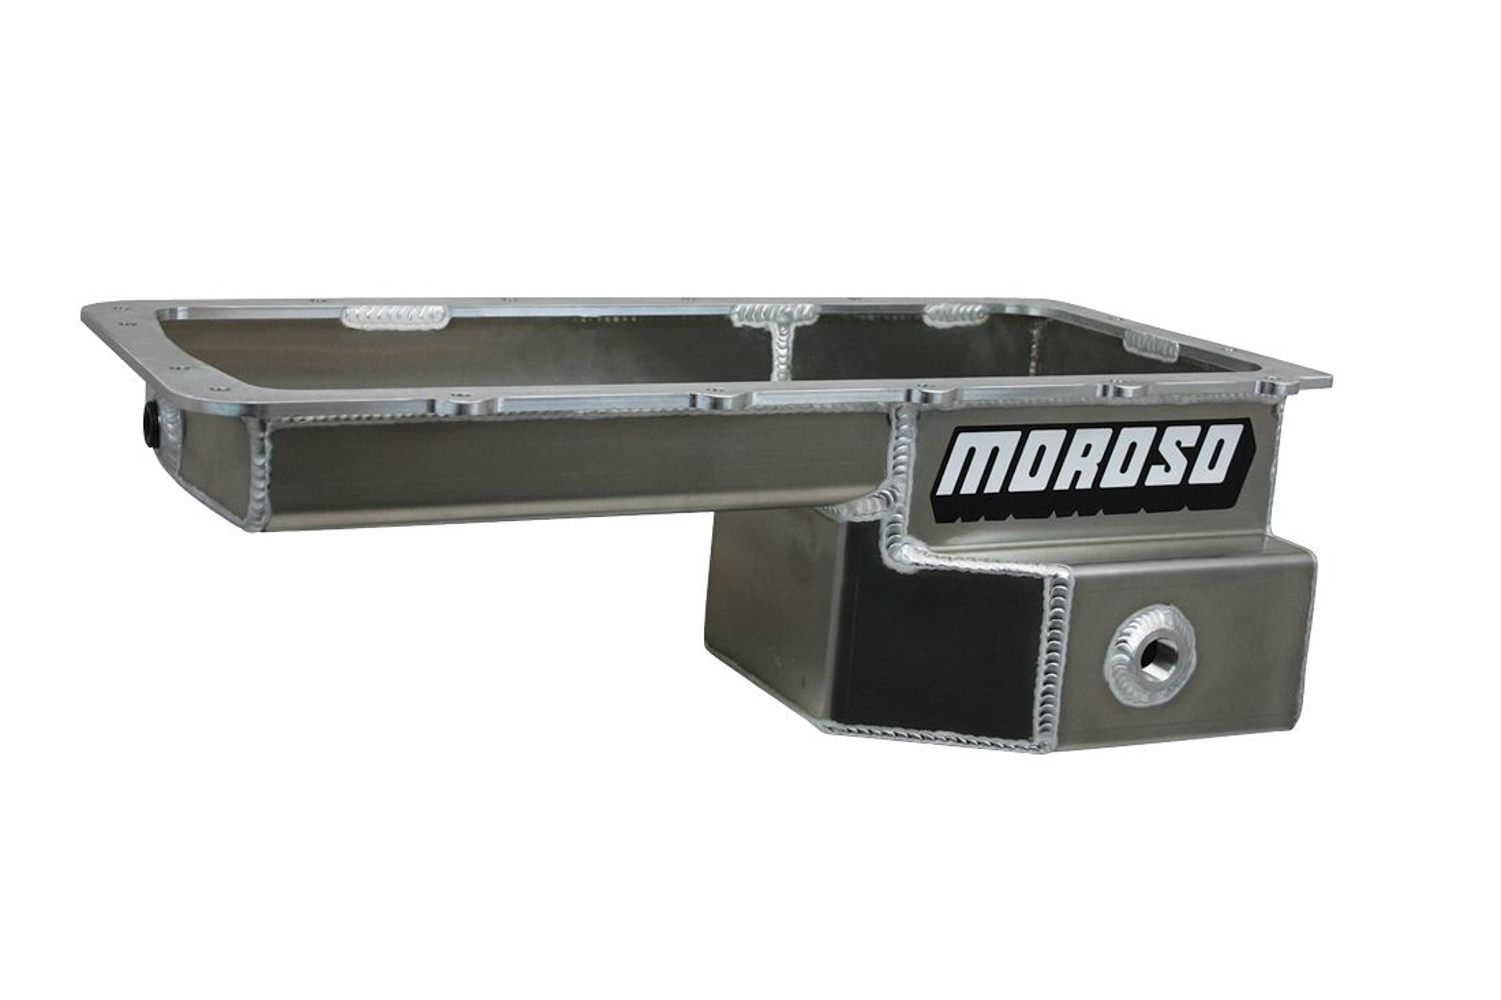 Moroso 20576 Engine Oil Pan, Road Race, Rear Sump, 7.5 qt, 6.625 in Deep, Baffled, Aluminum, Natural, Ford Coyote, Ford Mustang 1979-93, Each